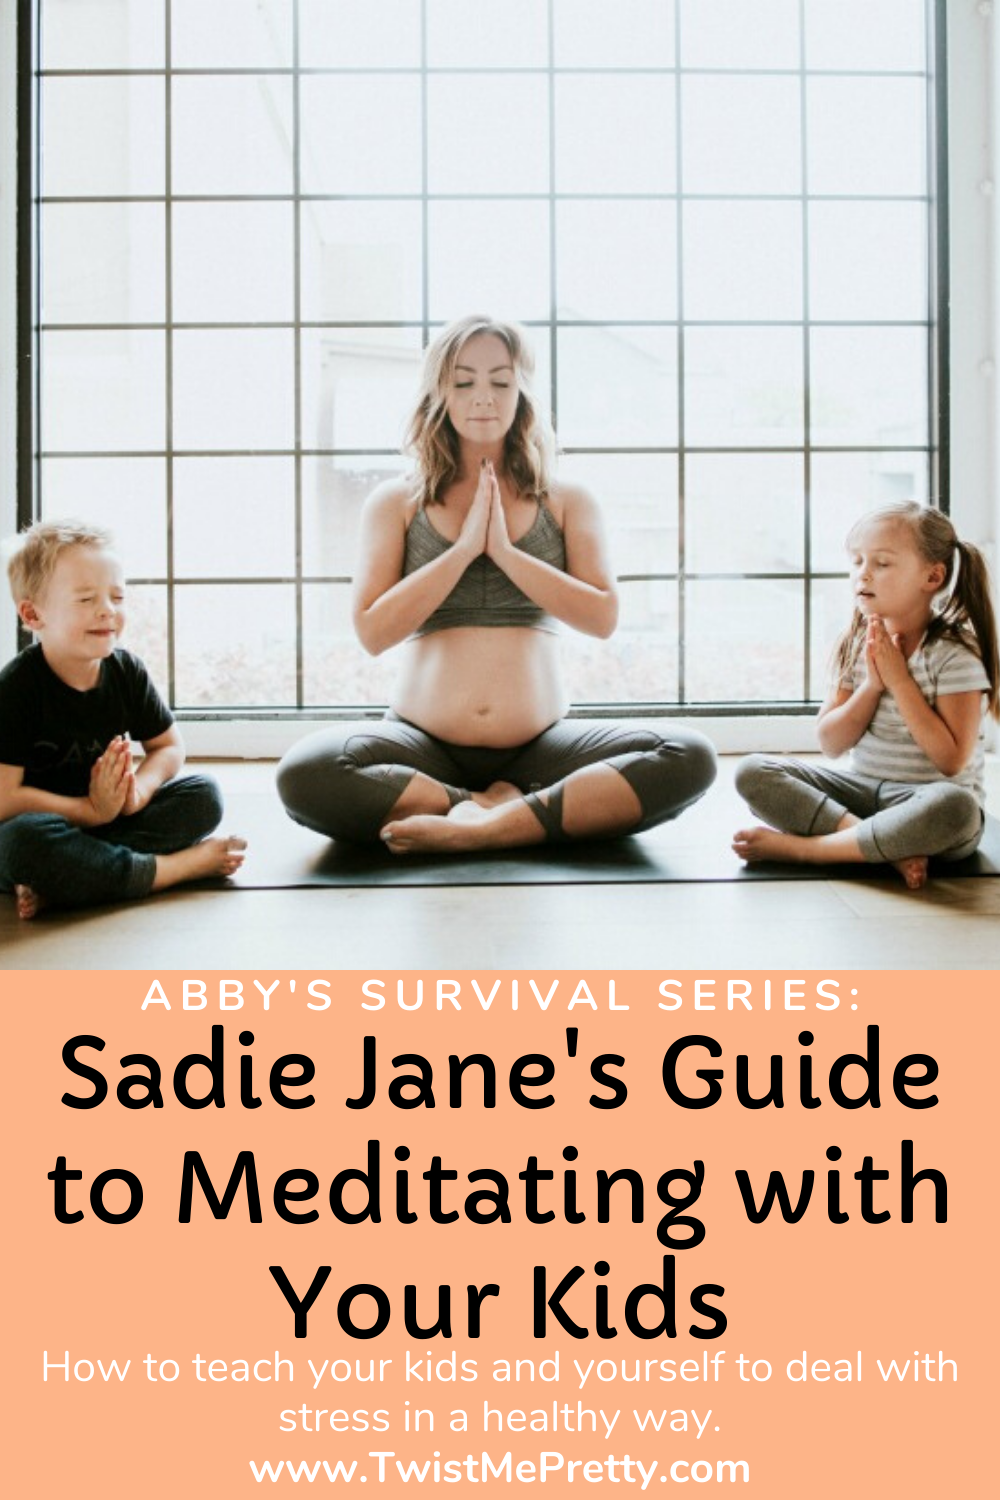 Abby's Survival Series: Sadie Jane's Guide to Meditating with Your Kids www.TwistMePretty.com